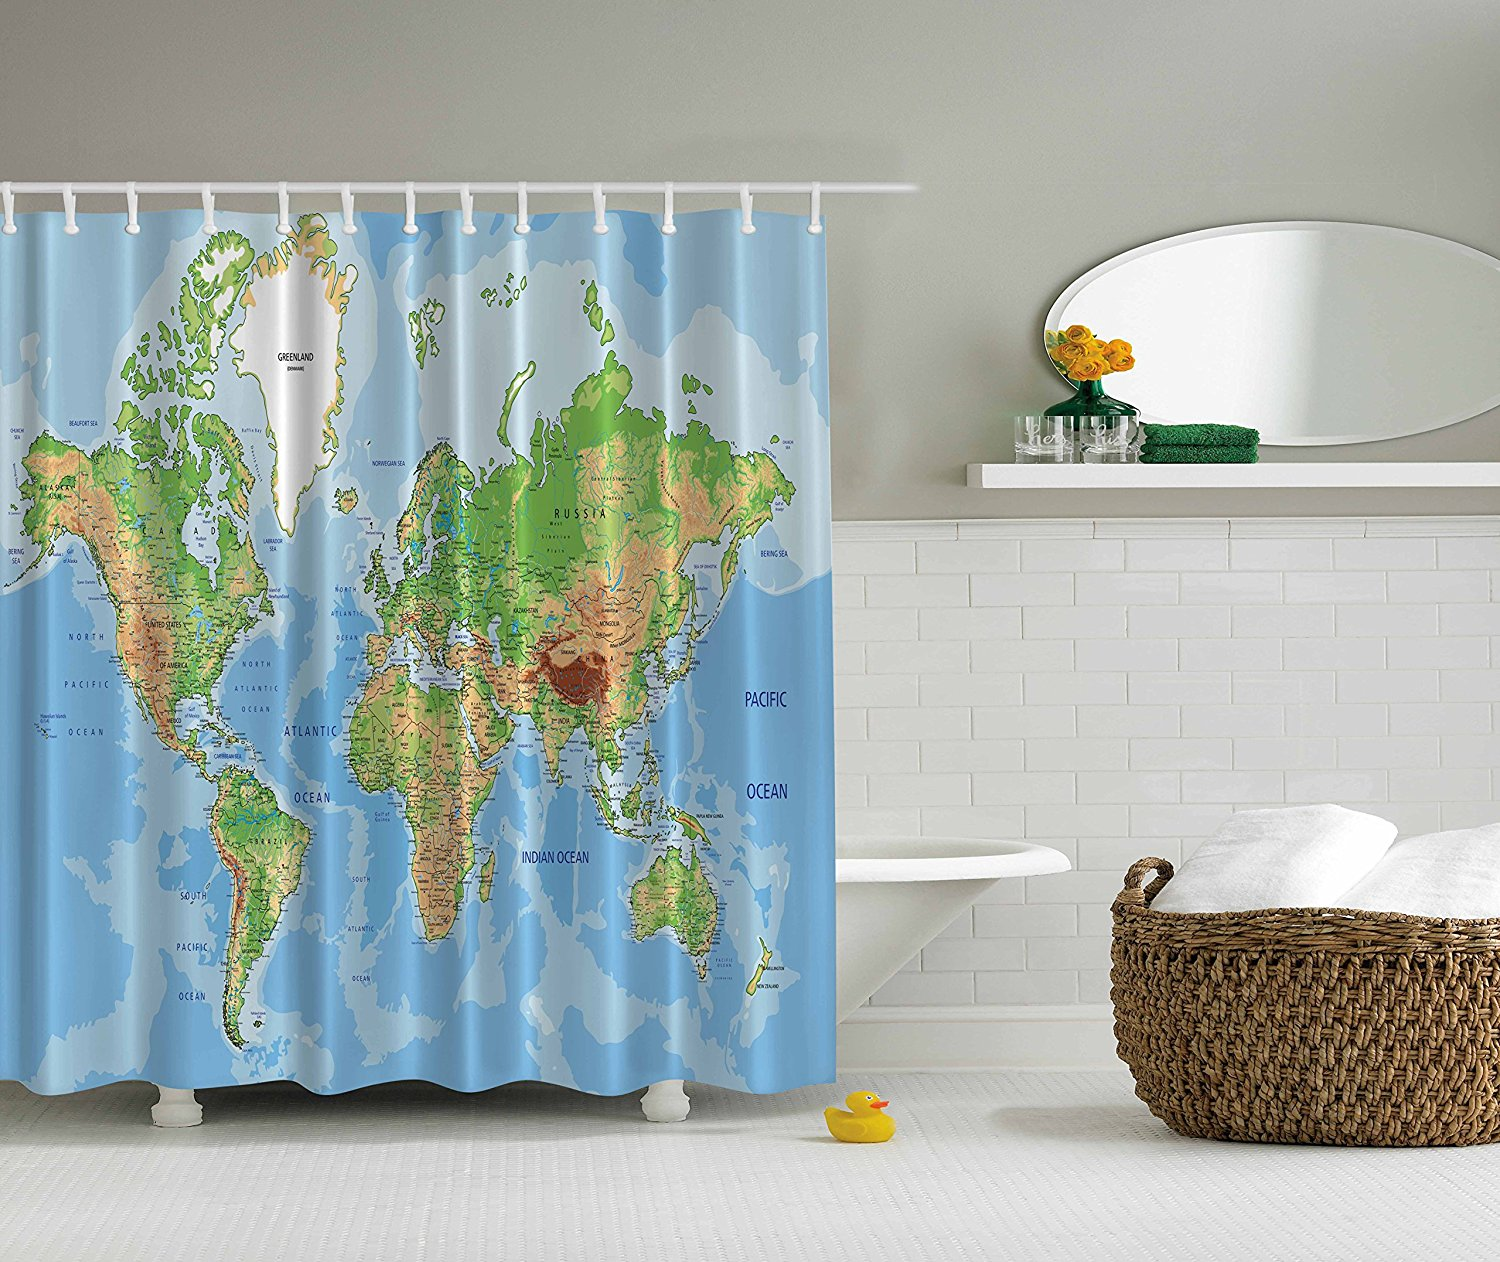 popular novelty shower curtainbuy cheap novelty shower curtain  - memory home world map printed shower curtain novelty home decor waterproofmildewproof polyester fabric shower curtain